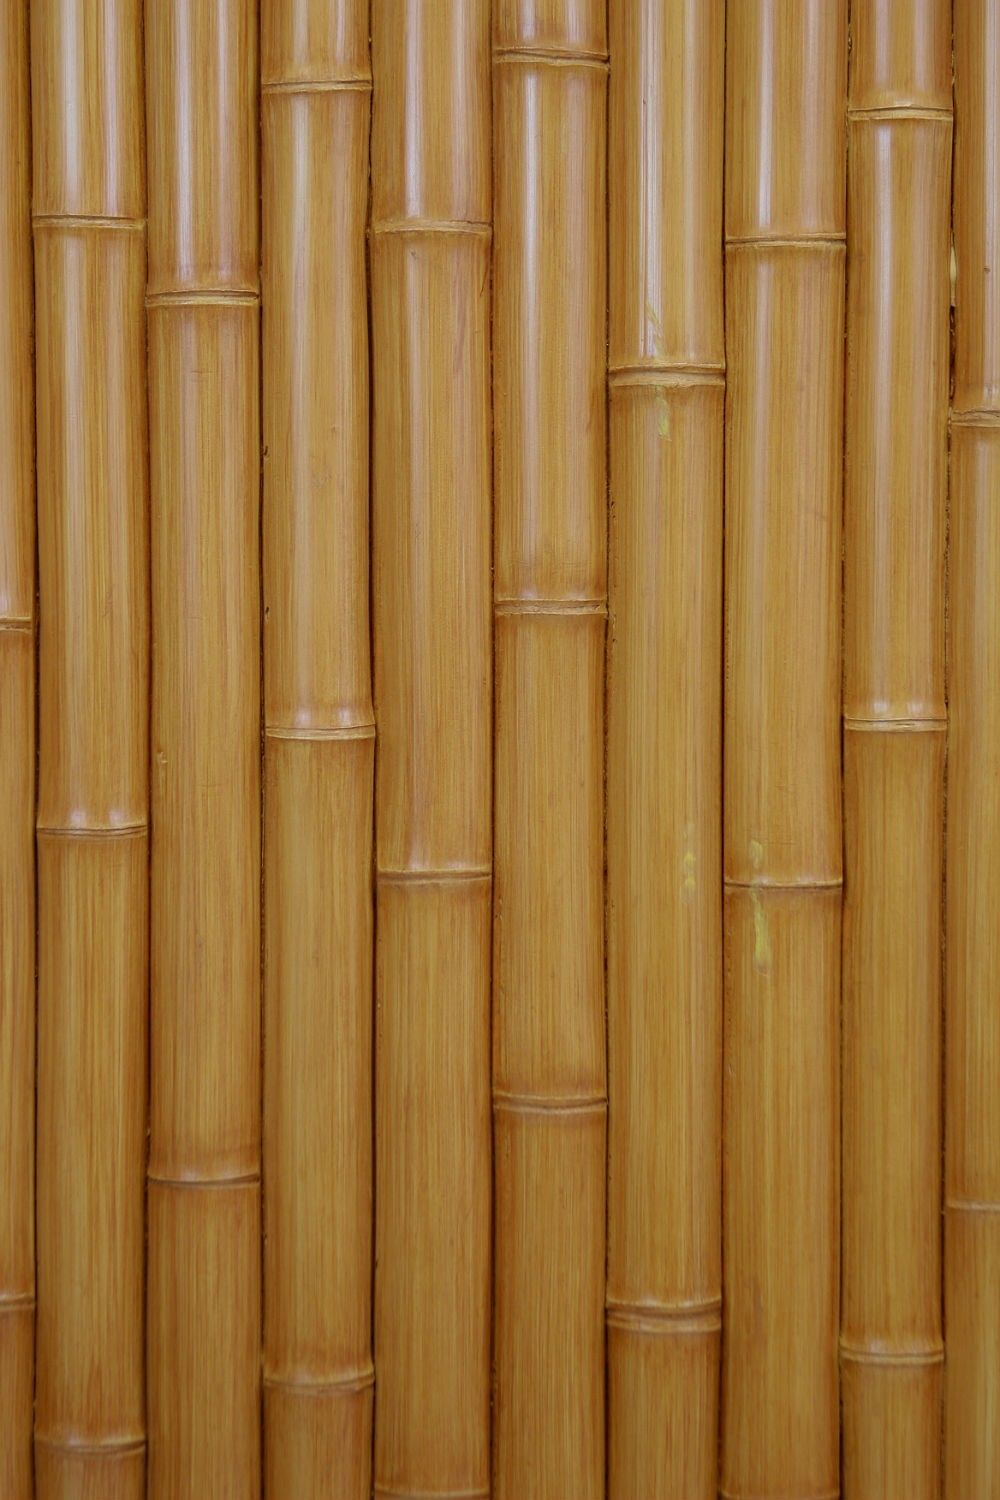 Faux Bamboo Wall Panels Natural Beige Faux Bamboo